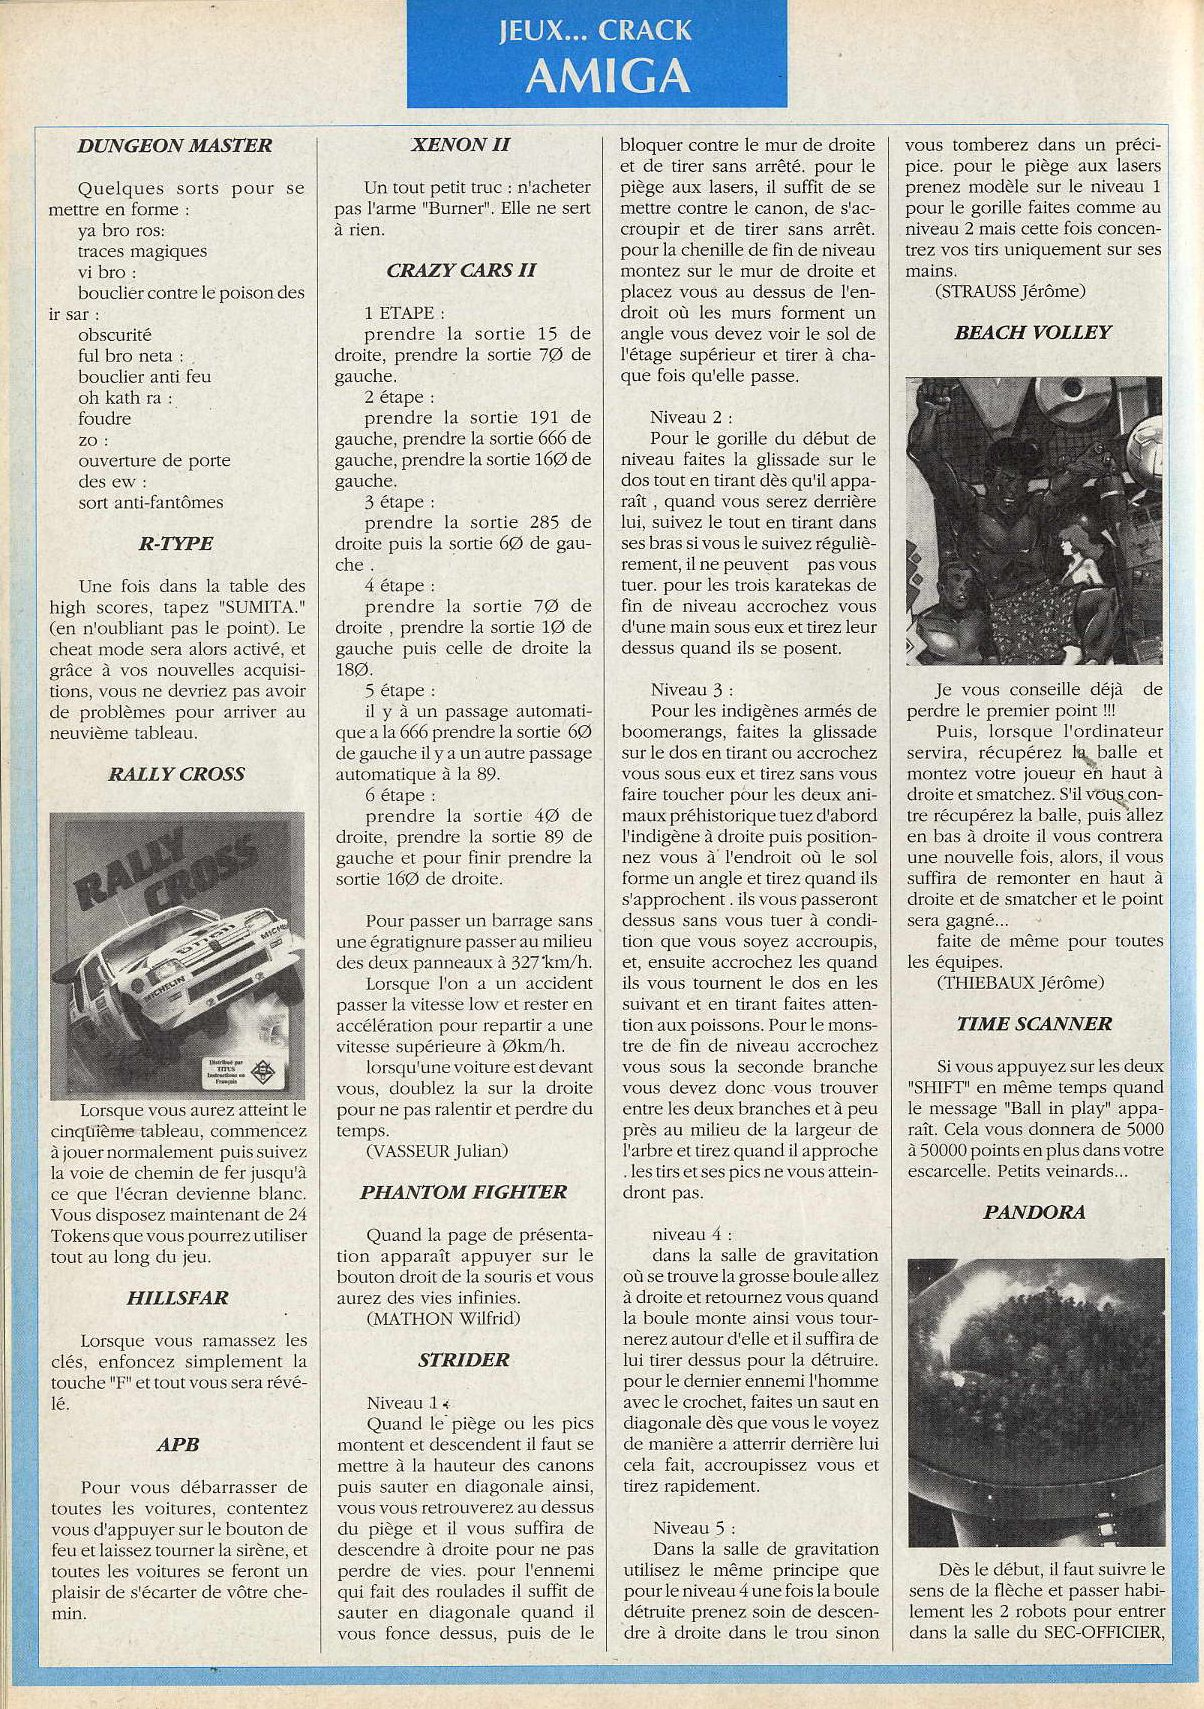 Dungeon Master Hints published in French magazine 'Joystick', Issue #2, February 1990, Page 64